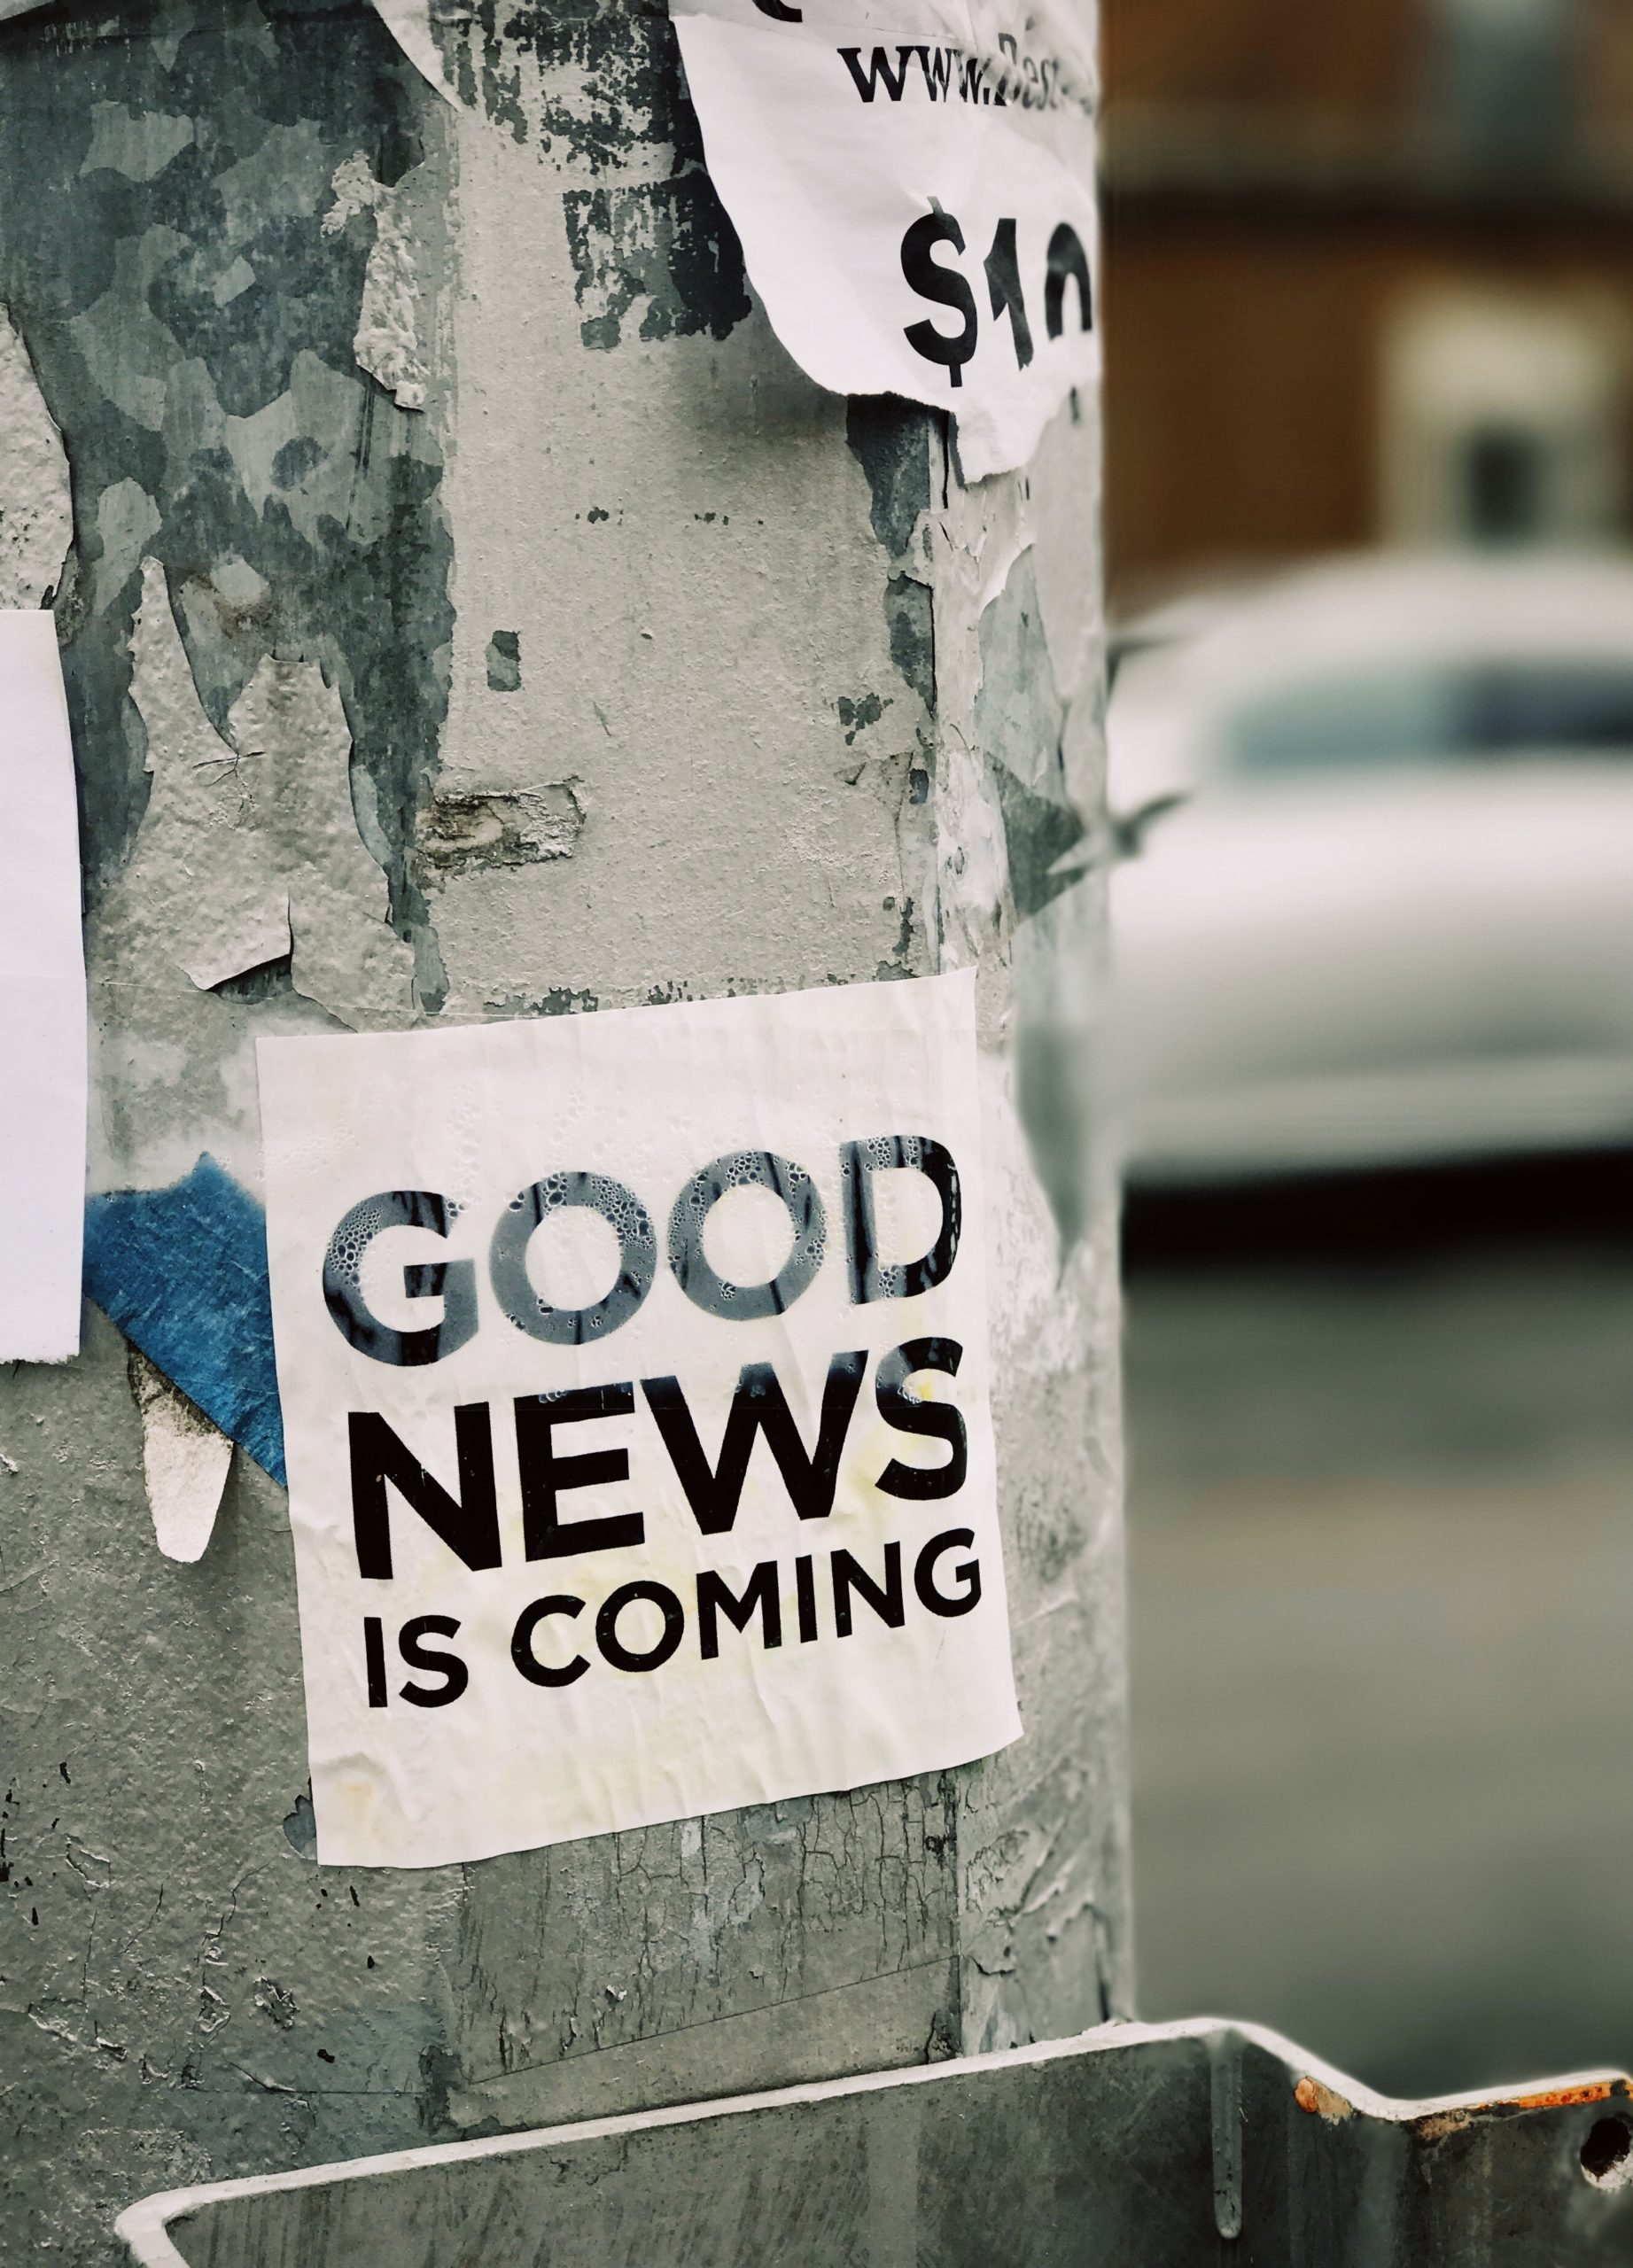 Good News is coming - New Work in der Corona Krise